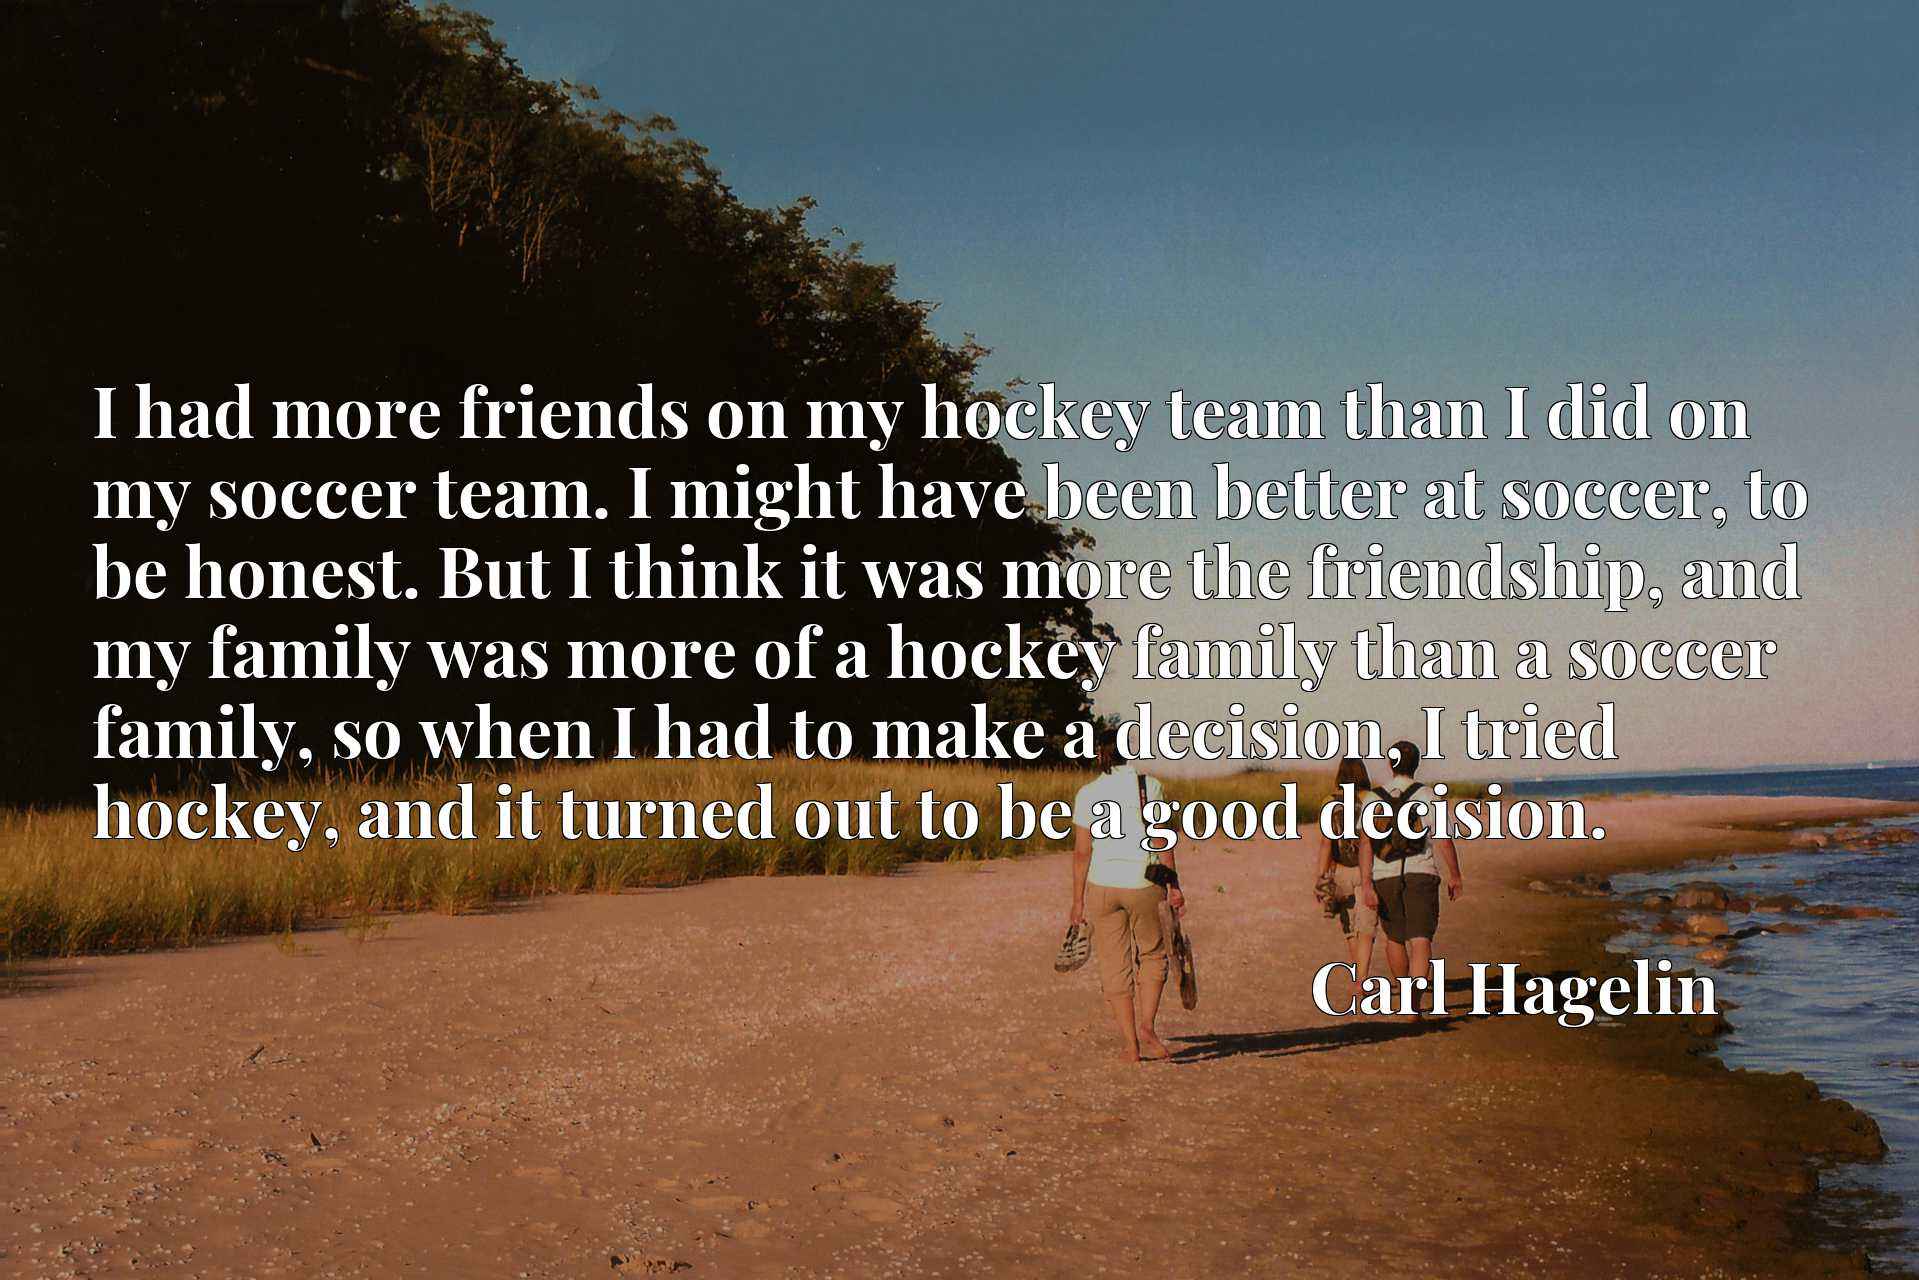 I had more friends on my hockey team than I did on my soccer team. I might have been better at soccer, to be honest. But I think it was more the friendship, and my family was more of a hockey family than a soccer family, so when I had to make a decision, I tried hockey, and it turned out to be a good decision.